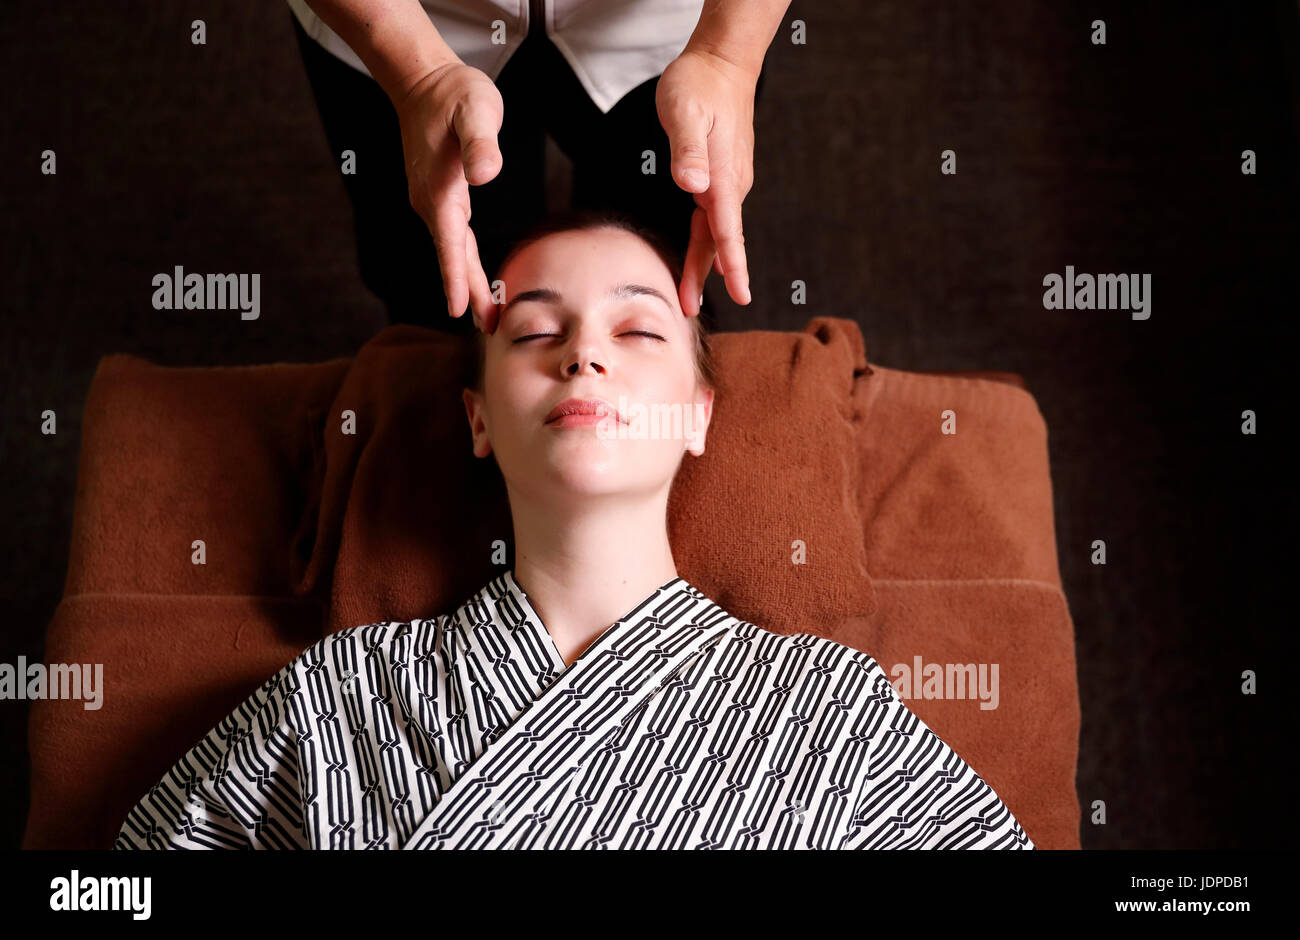 Caucasian woman getting a massage at a spa in Tokyo, Japan - Stock Image